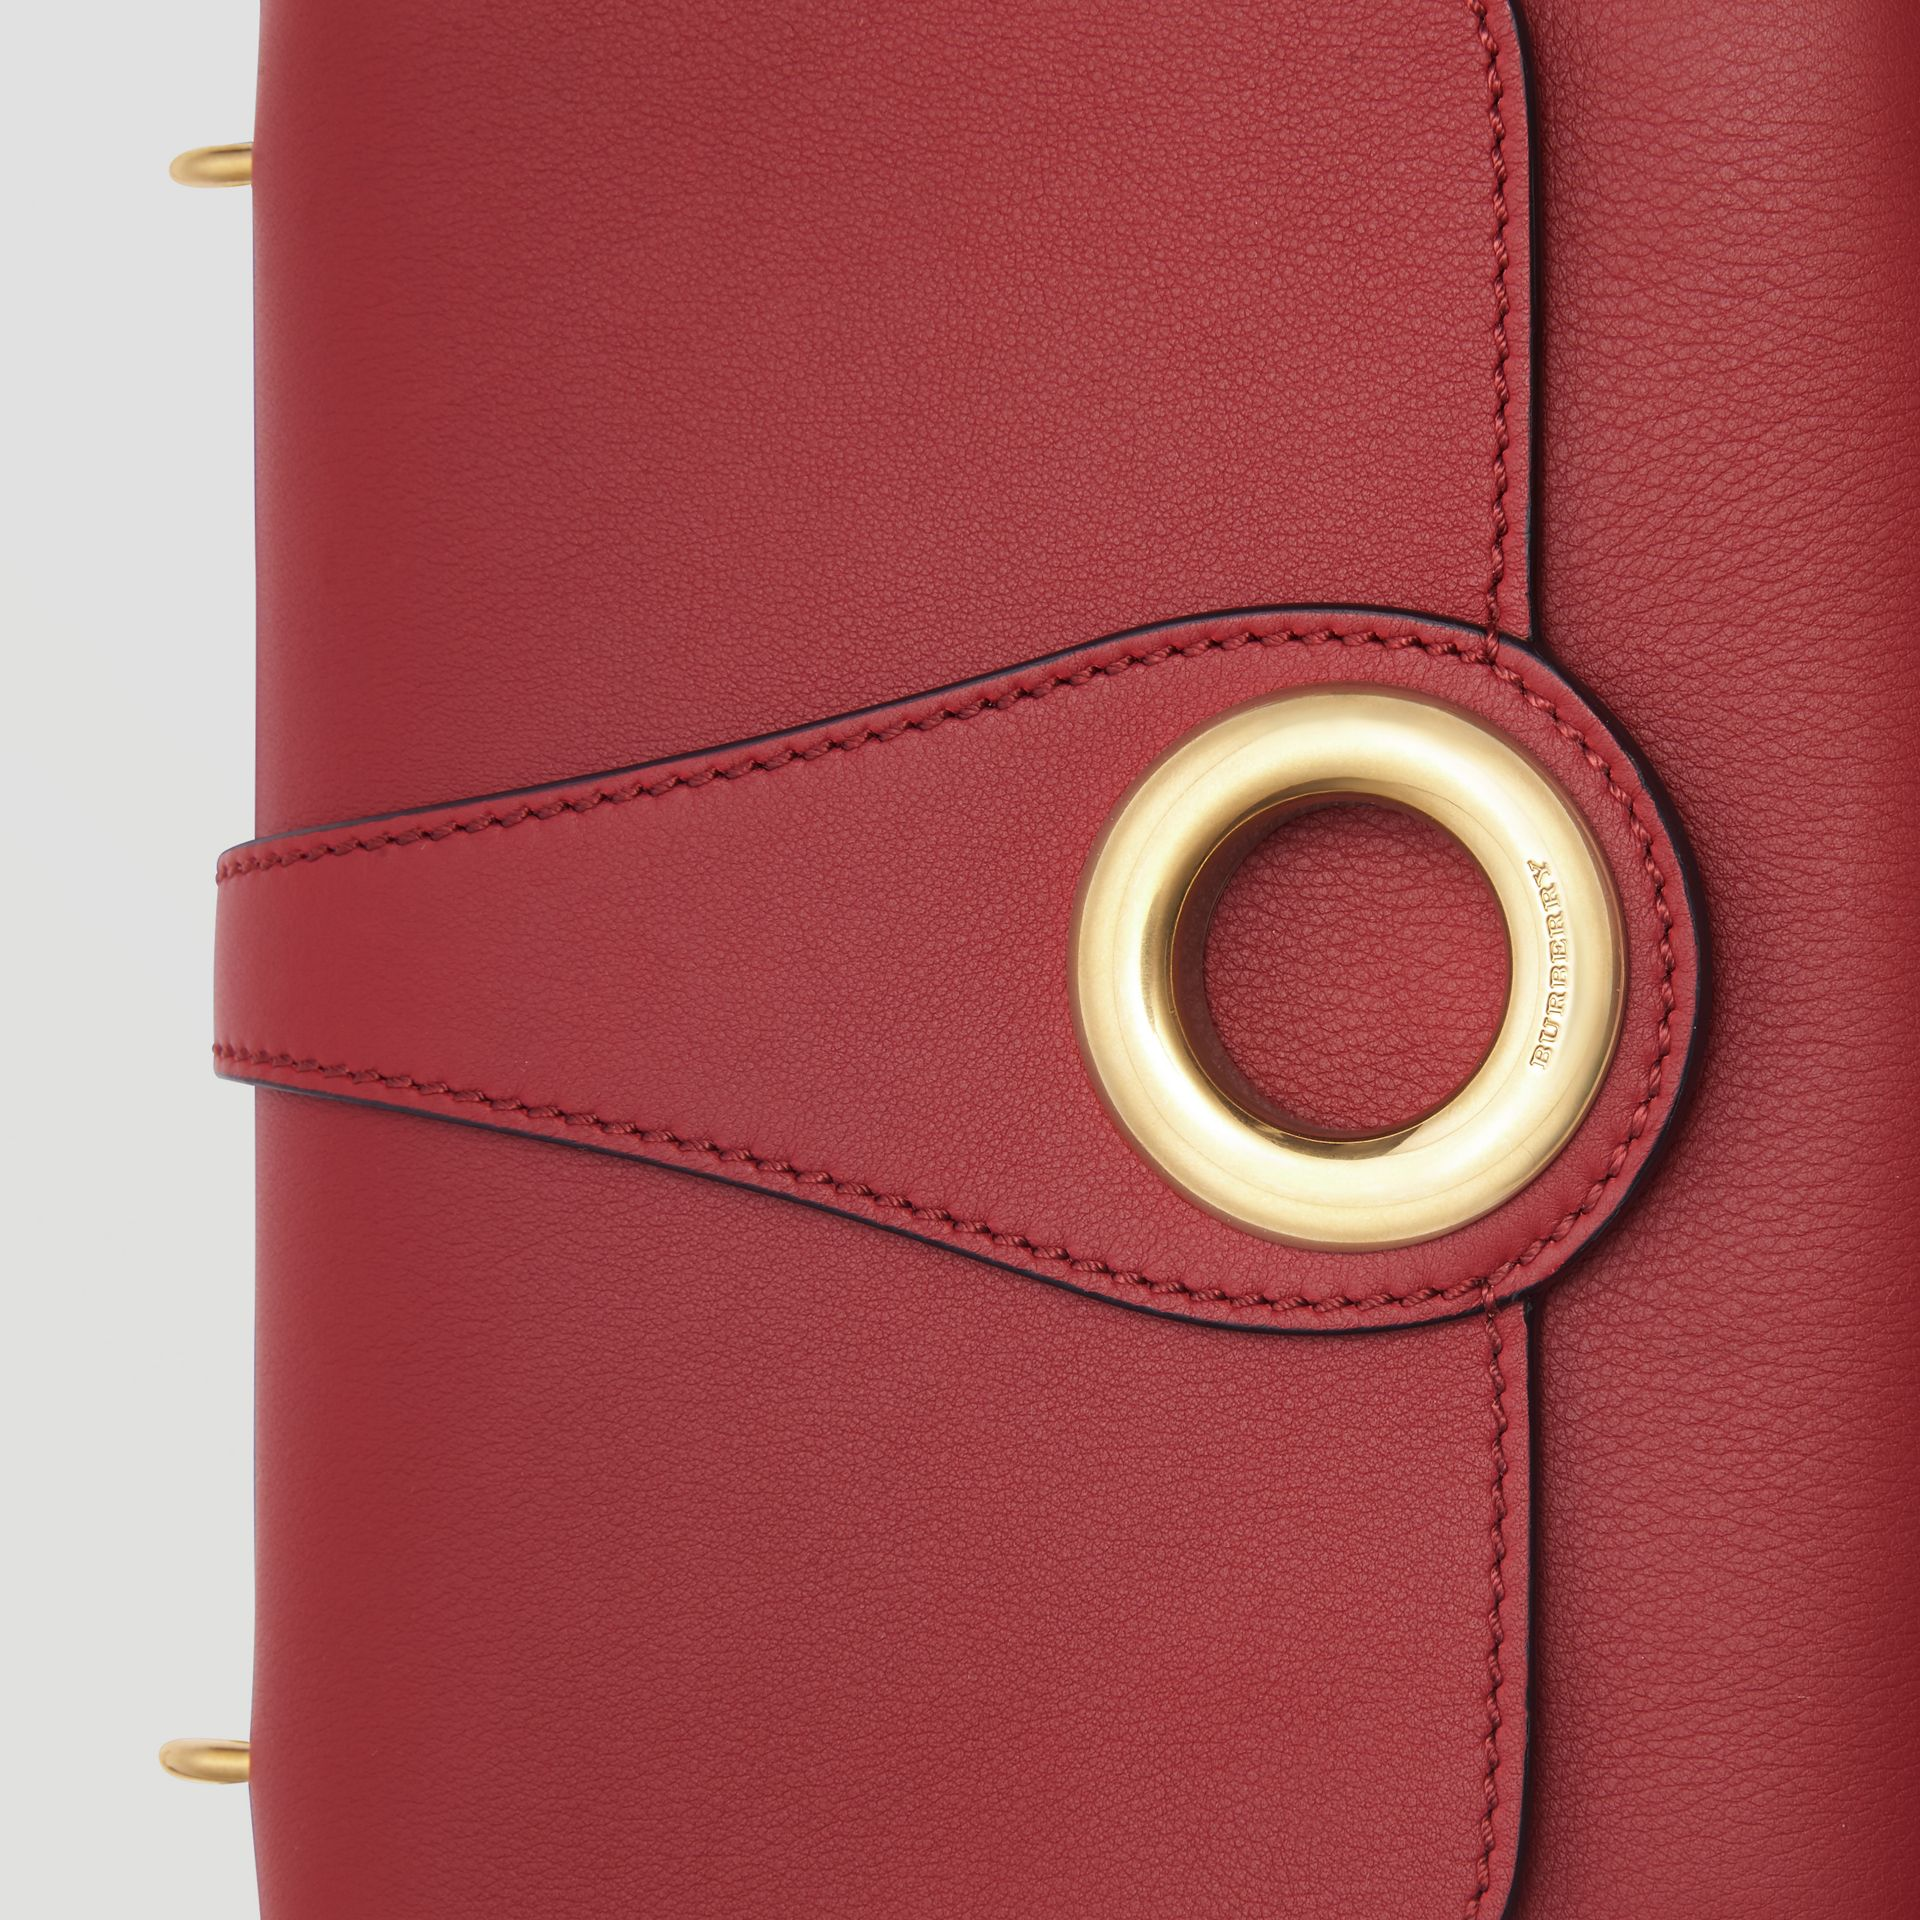 The Leather Grommet Detail Crossbody Bag in Crimson - Women | Burberry United Kingdom - gallery image 1